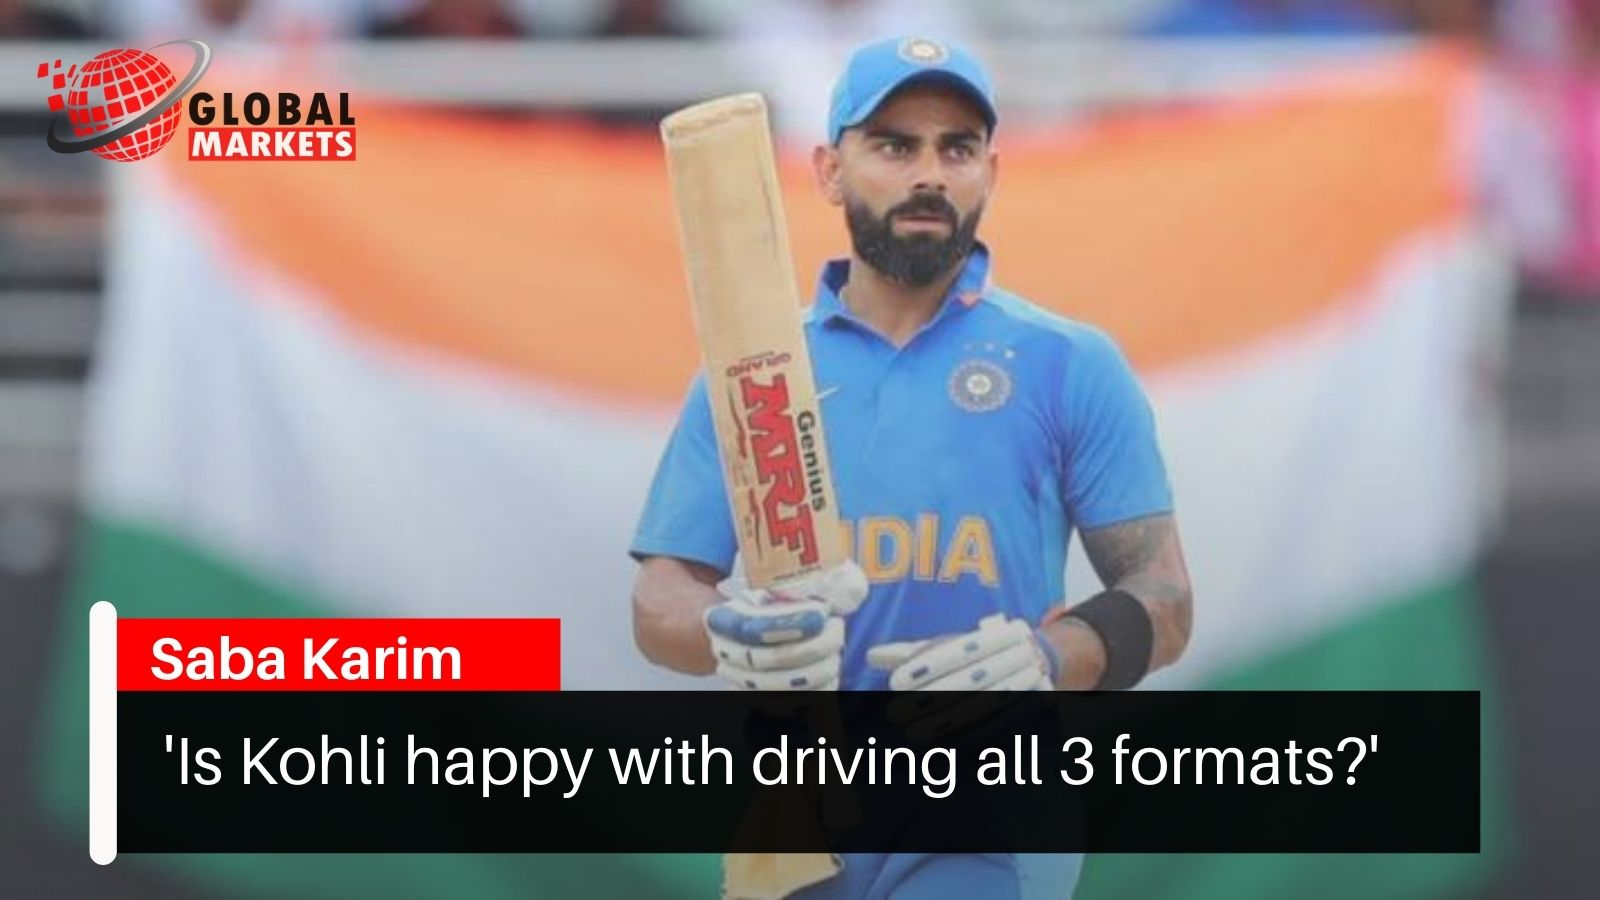 'Is Kohli happy with driving all 3 formats?'